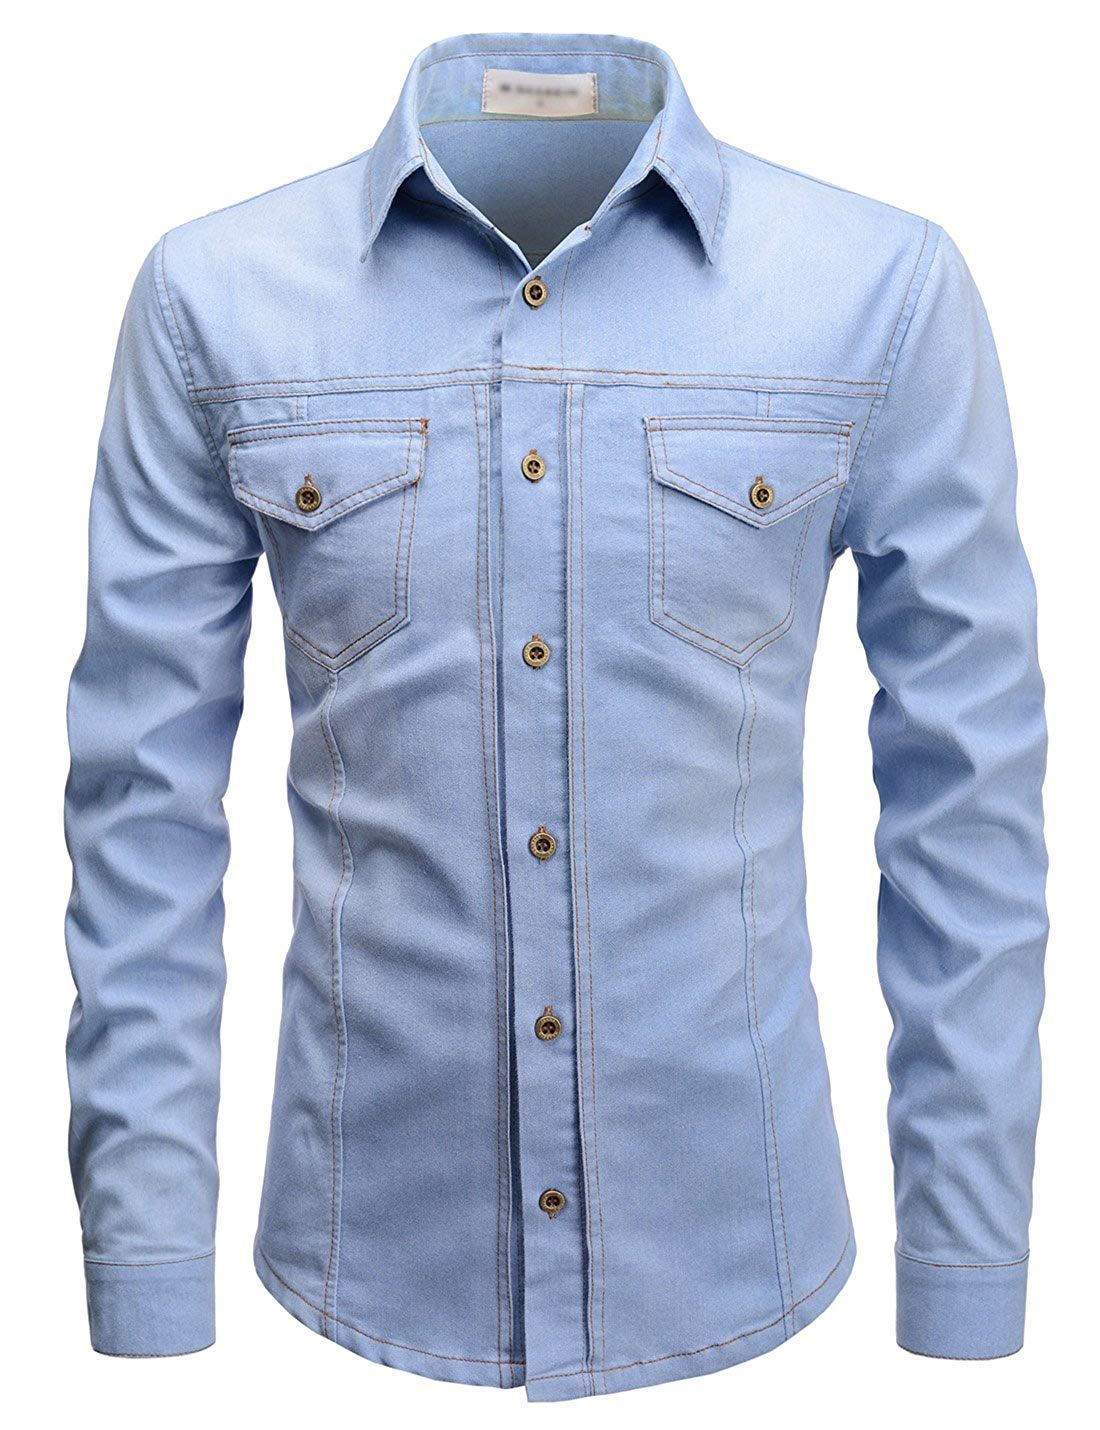 216adbe9b5 TheLees Slim Chest Two Pocket Vintage Washing Denim Long Sleeve Stretchy  Shirts at Amazon Men s Clothing